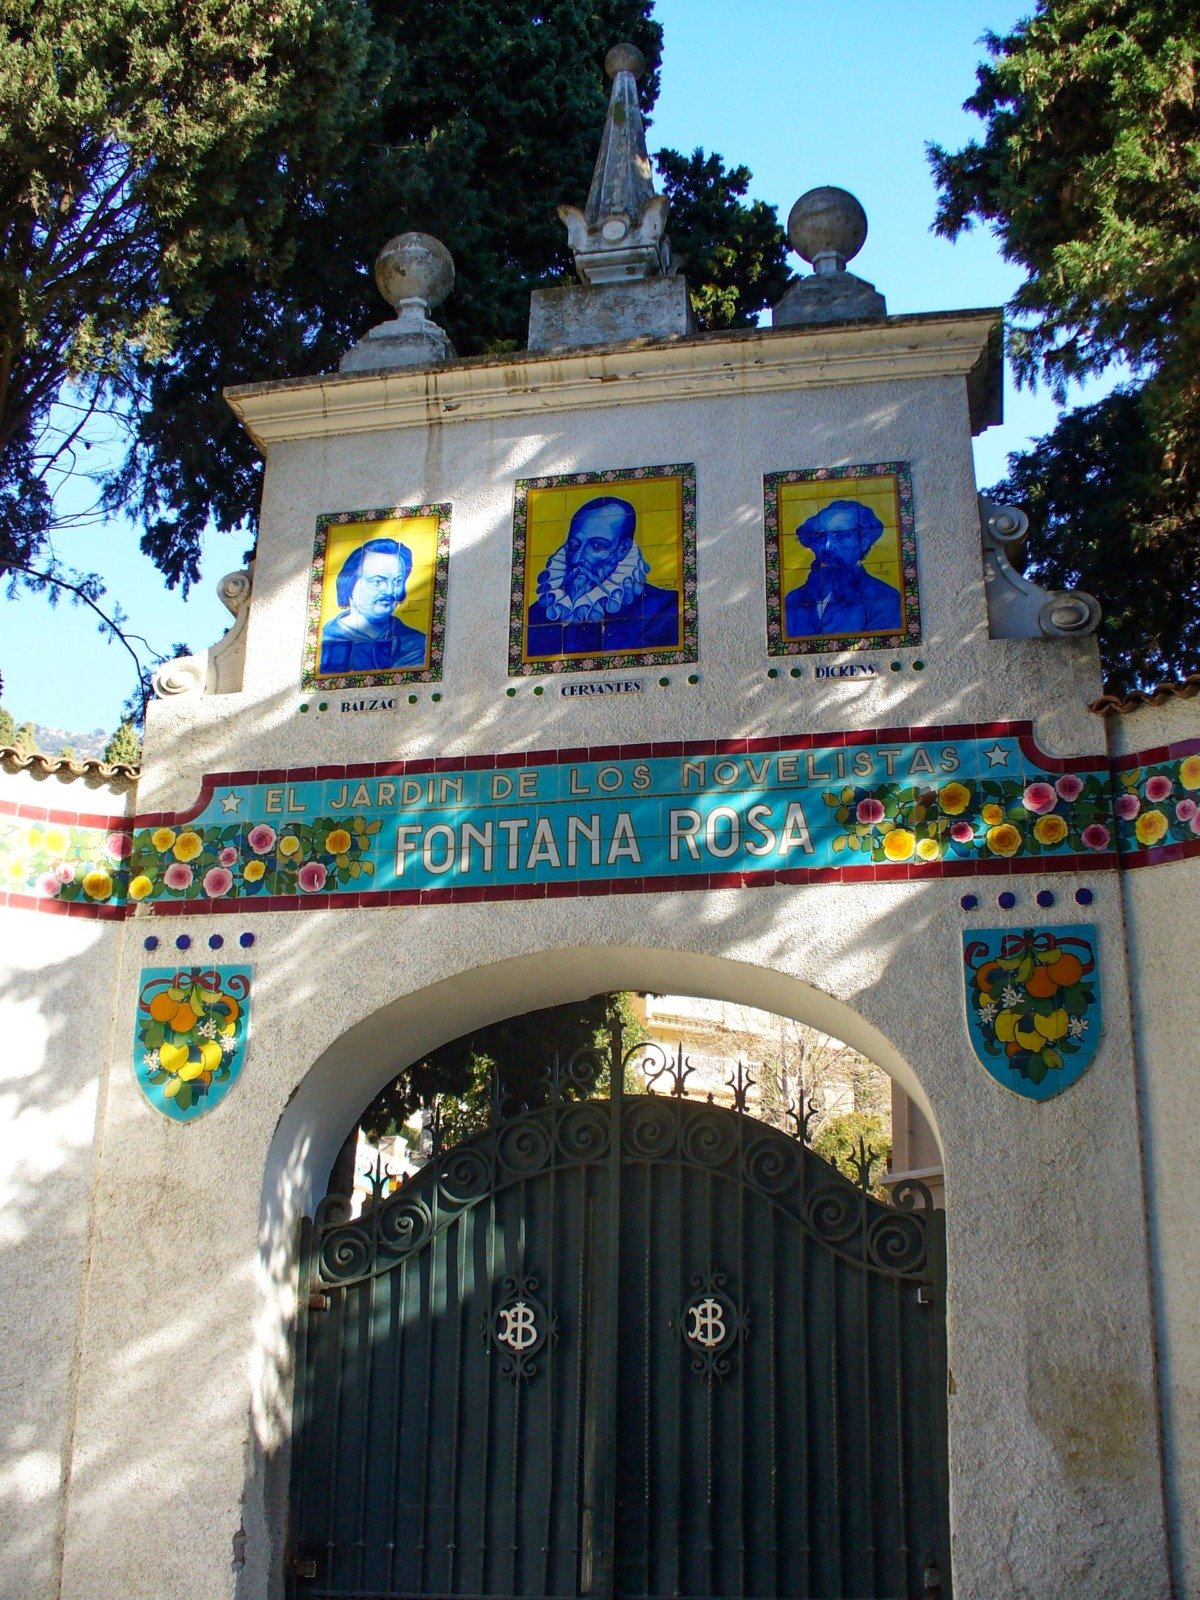 Entrance to the Fontana Rosa Gardens (author unknown) - licence [CC BY-SA 3.0] from Wikimedia Commons